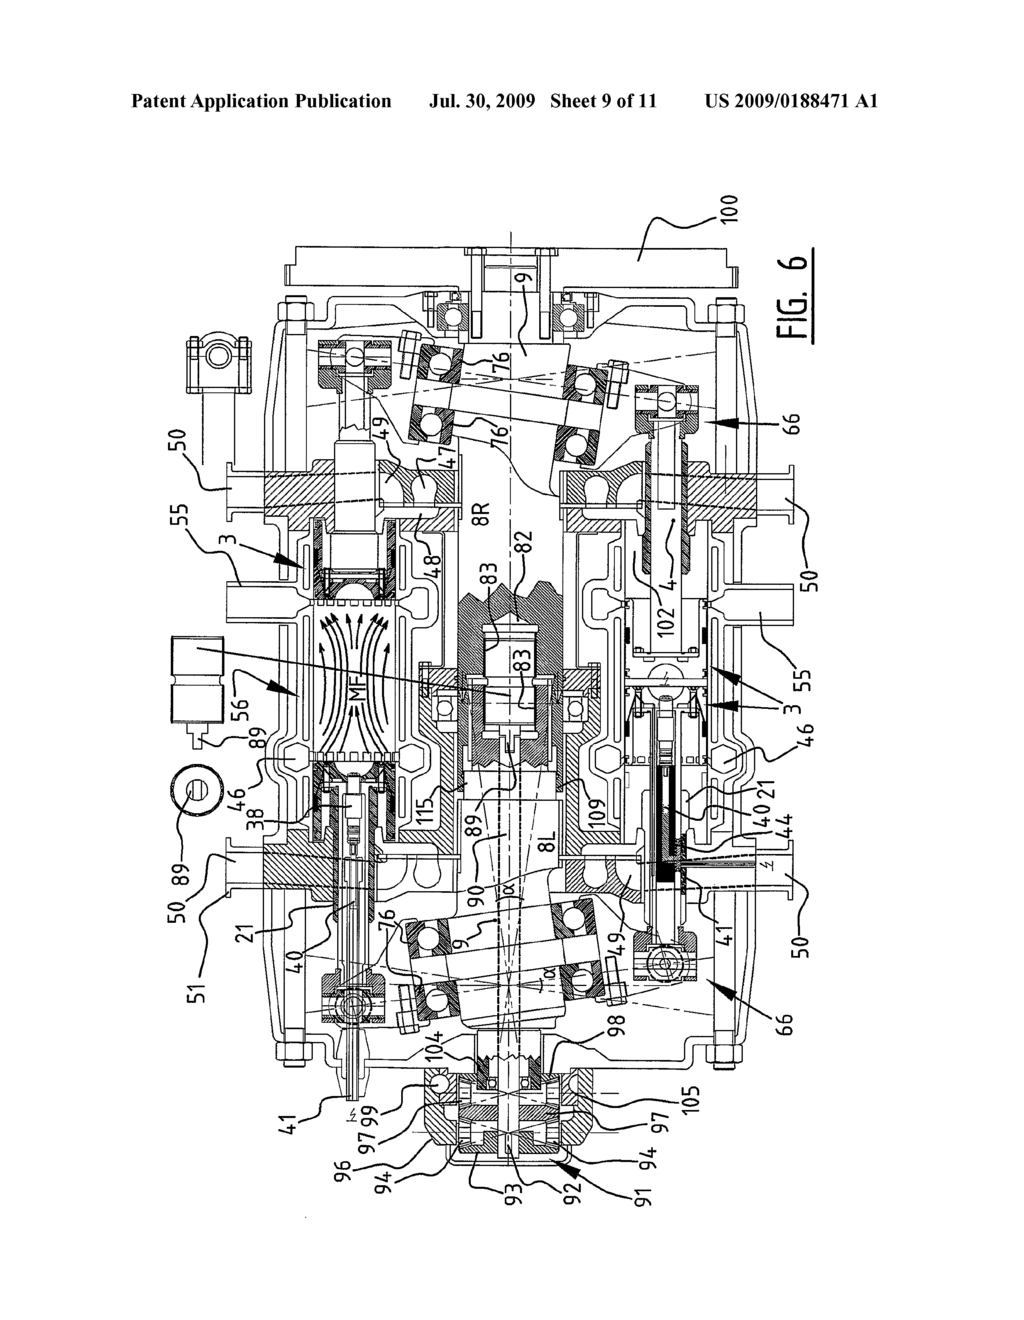 hight resolution of internal combustion engine with variable compression ratio diagram schematic and image 10